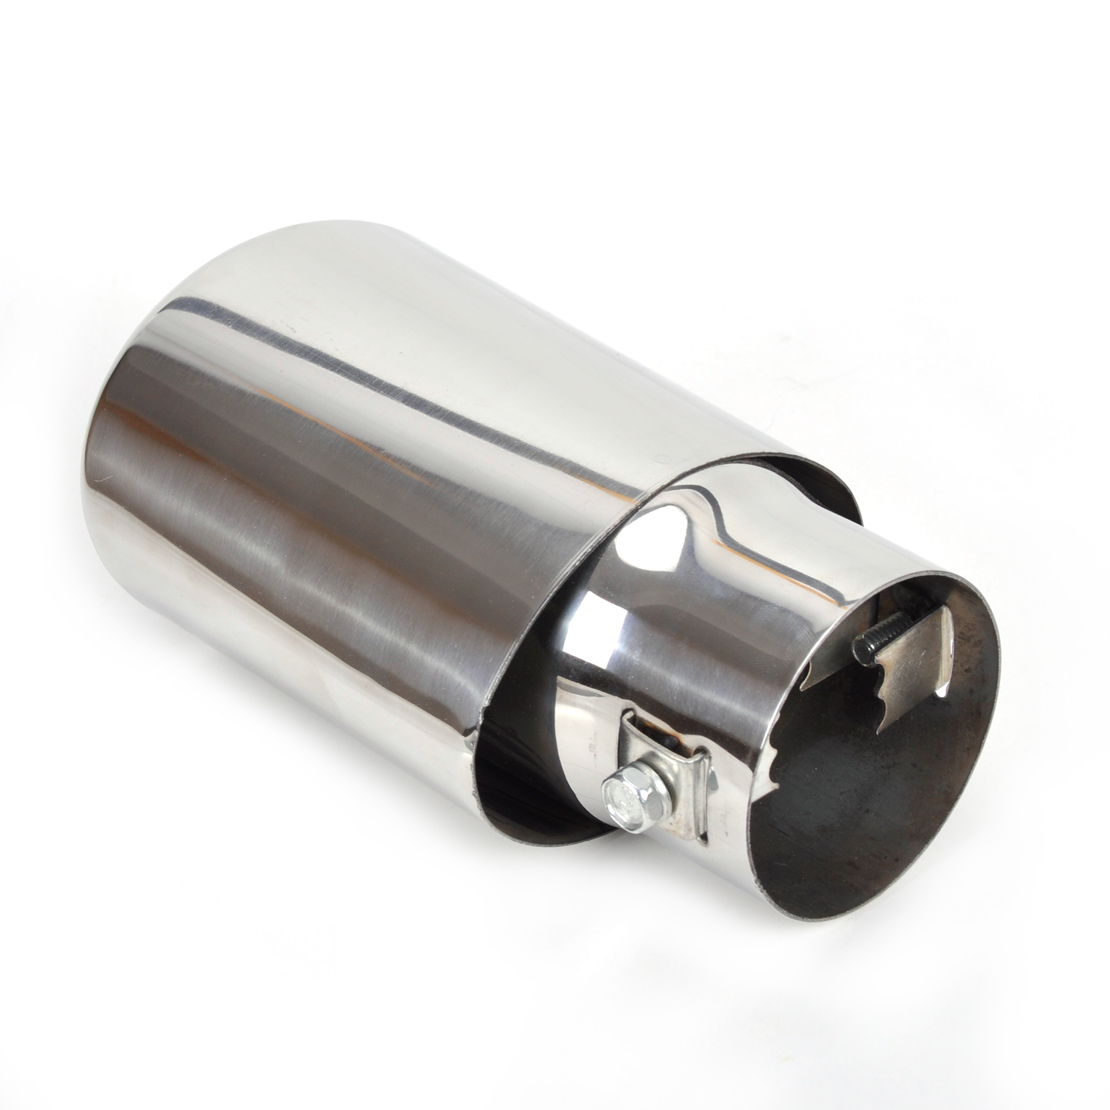 toyota yaris trd exhaust modifikasi grand new avanza 2016 stainless steel tailpipe rear muffler tip for